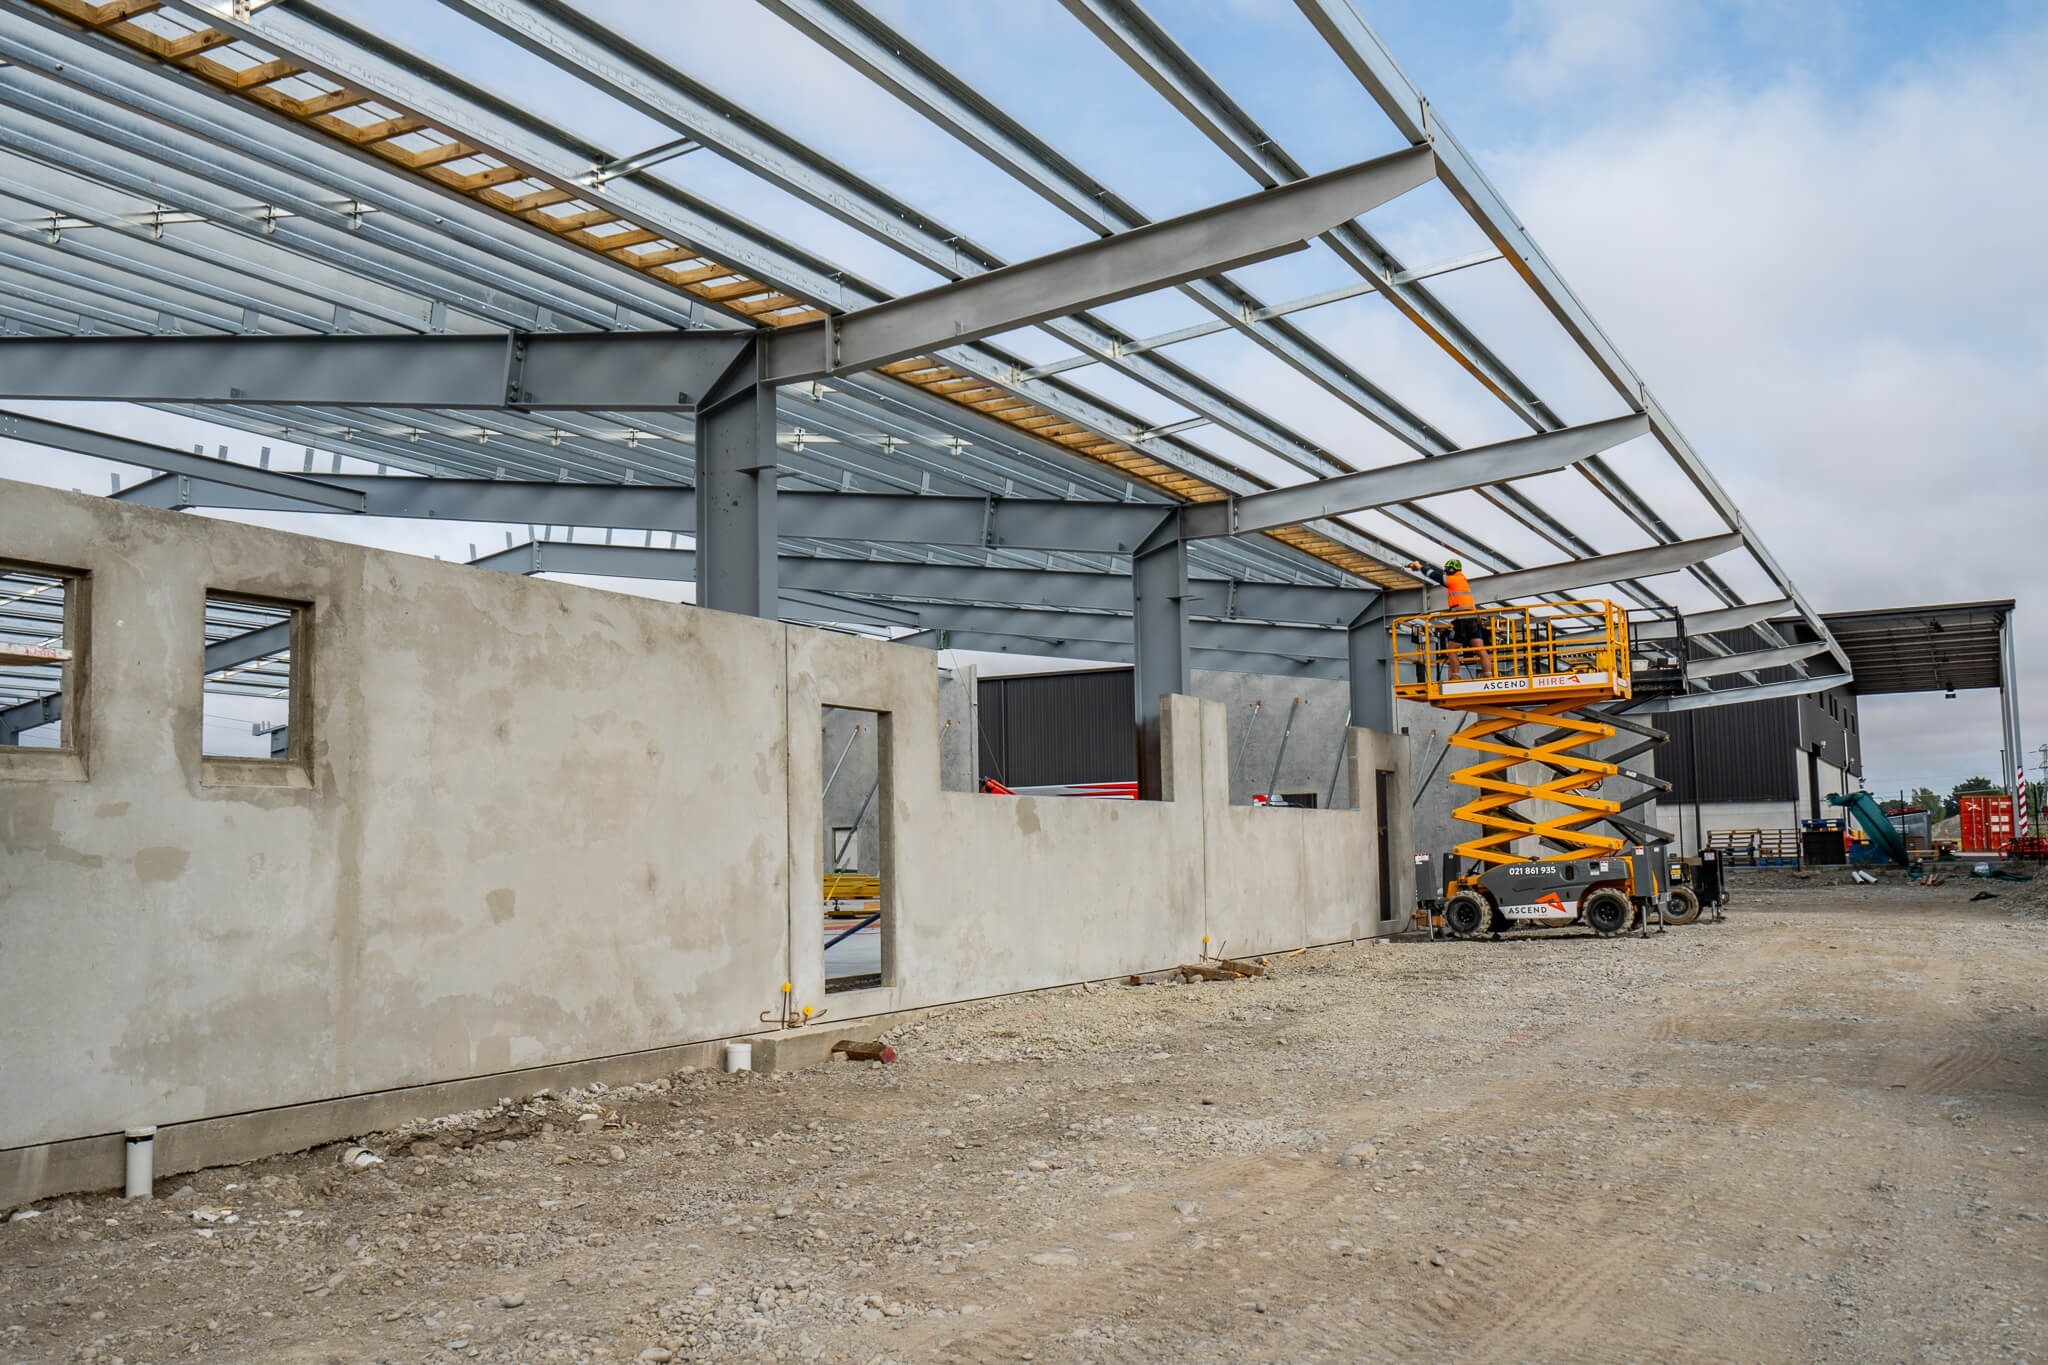 bg_cooke_construction_structural_steel_13-12-19_momac_small_28